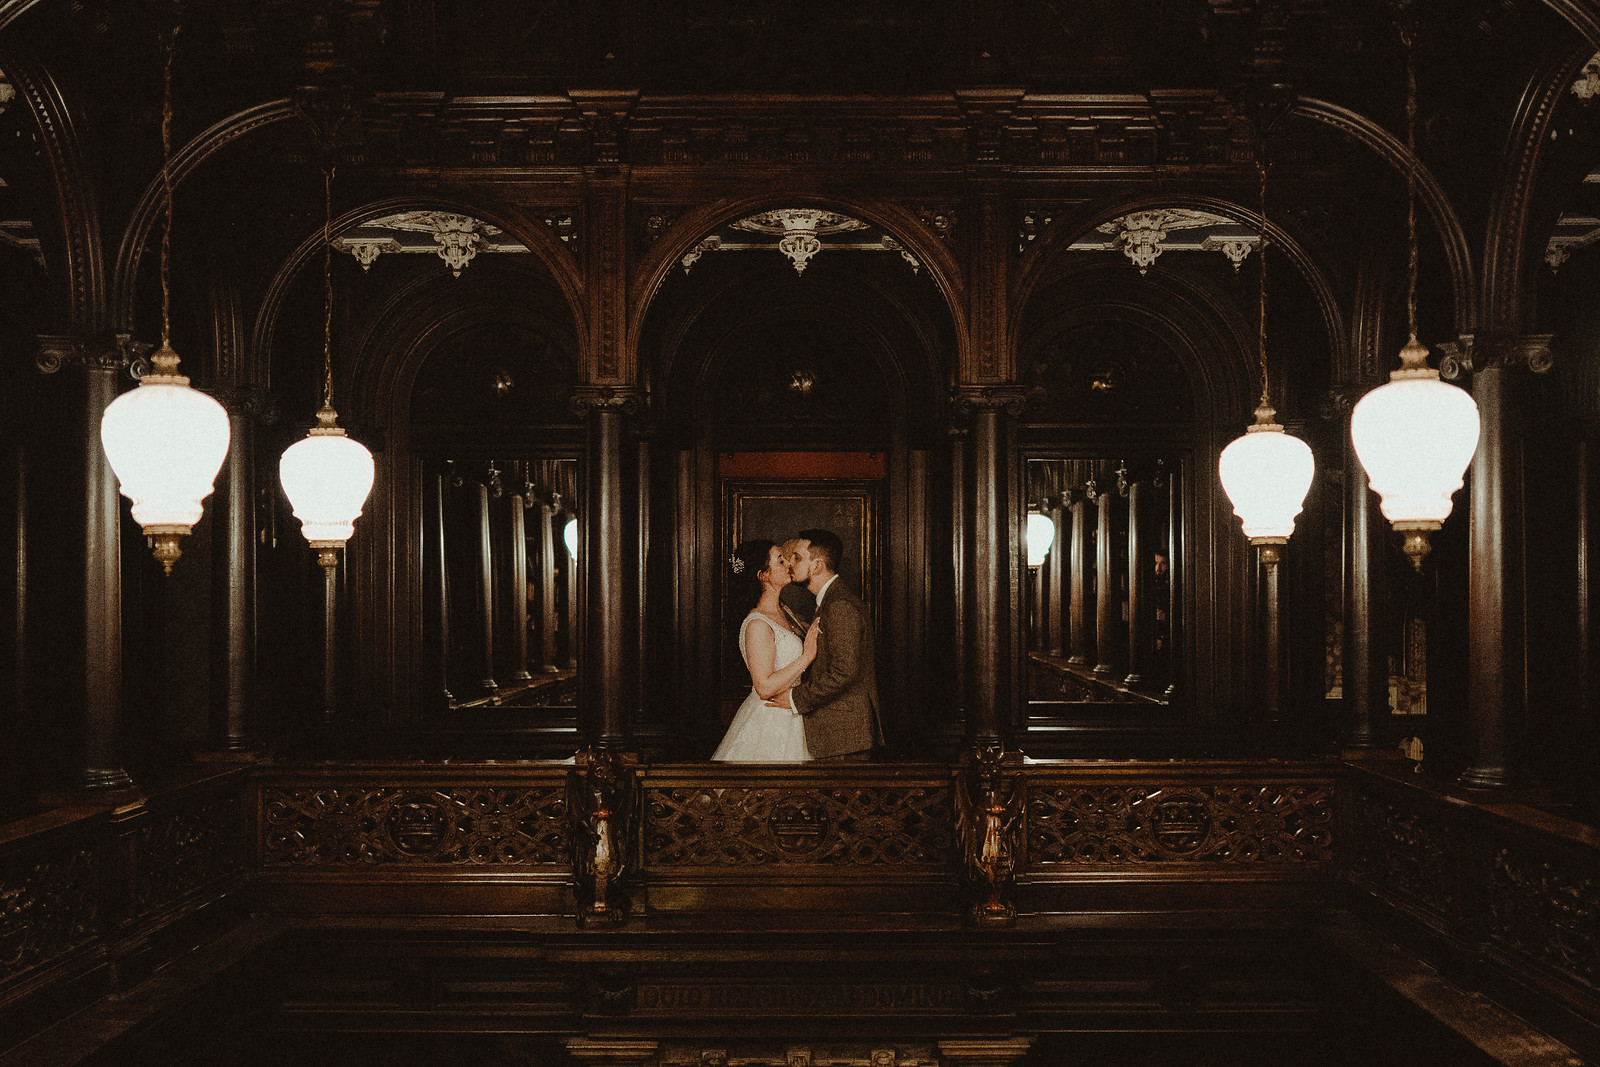 Bride and groom kiss in their vintage wedding venue| Wedding photographers